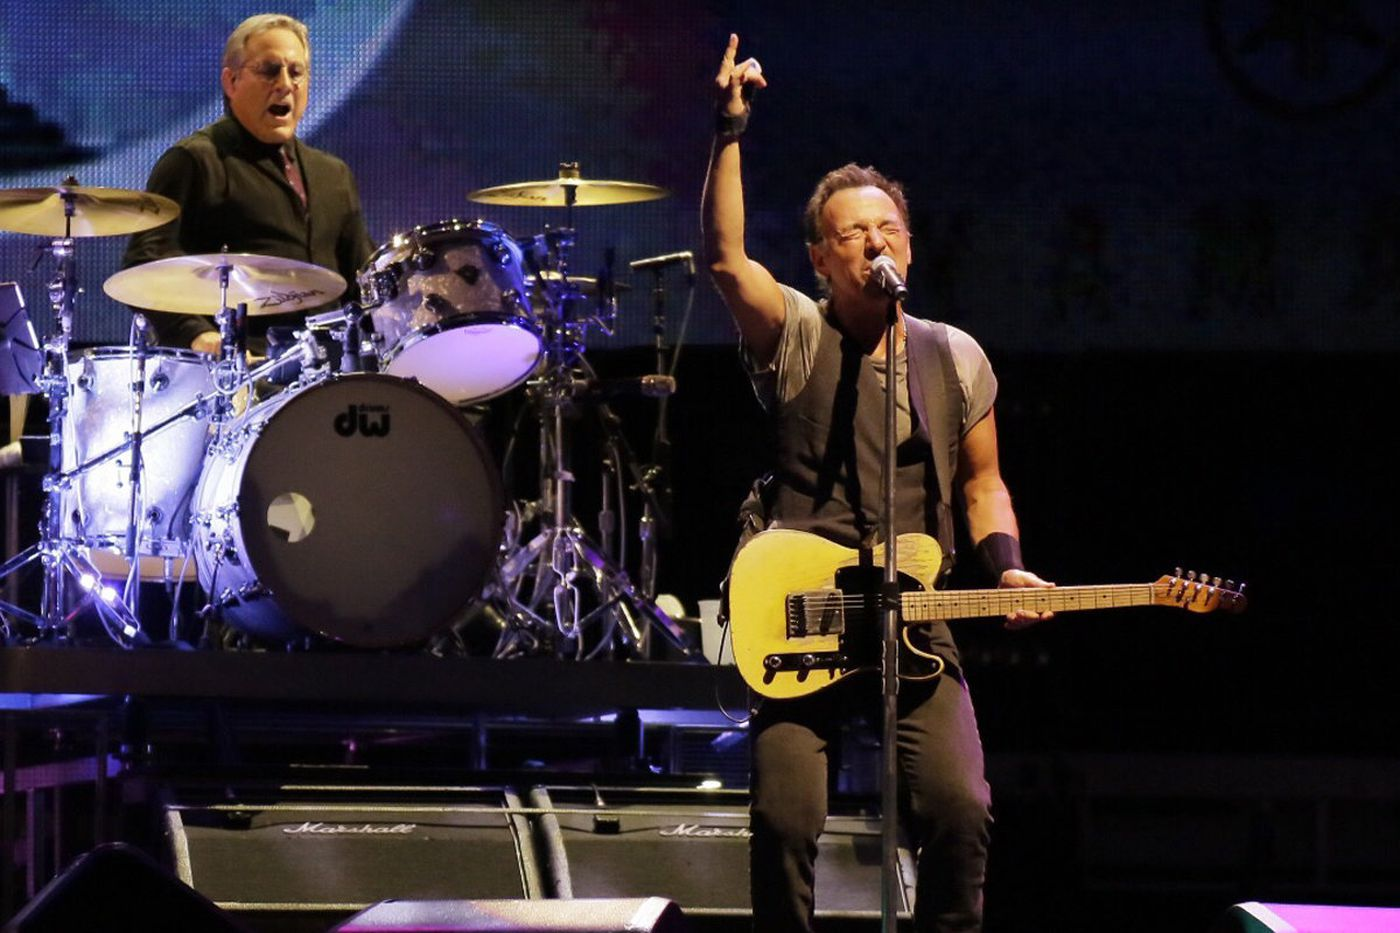 Is Bruce Springsteen Broadway bound?